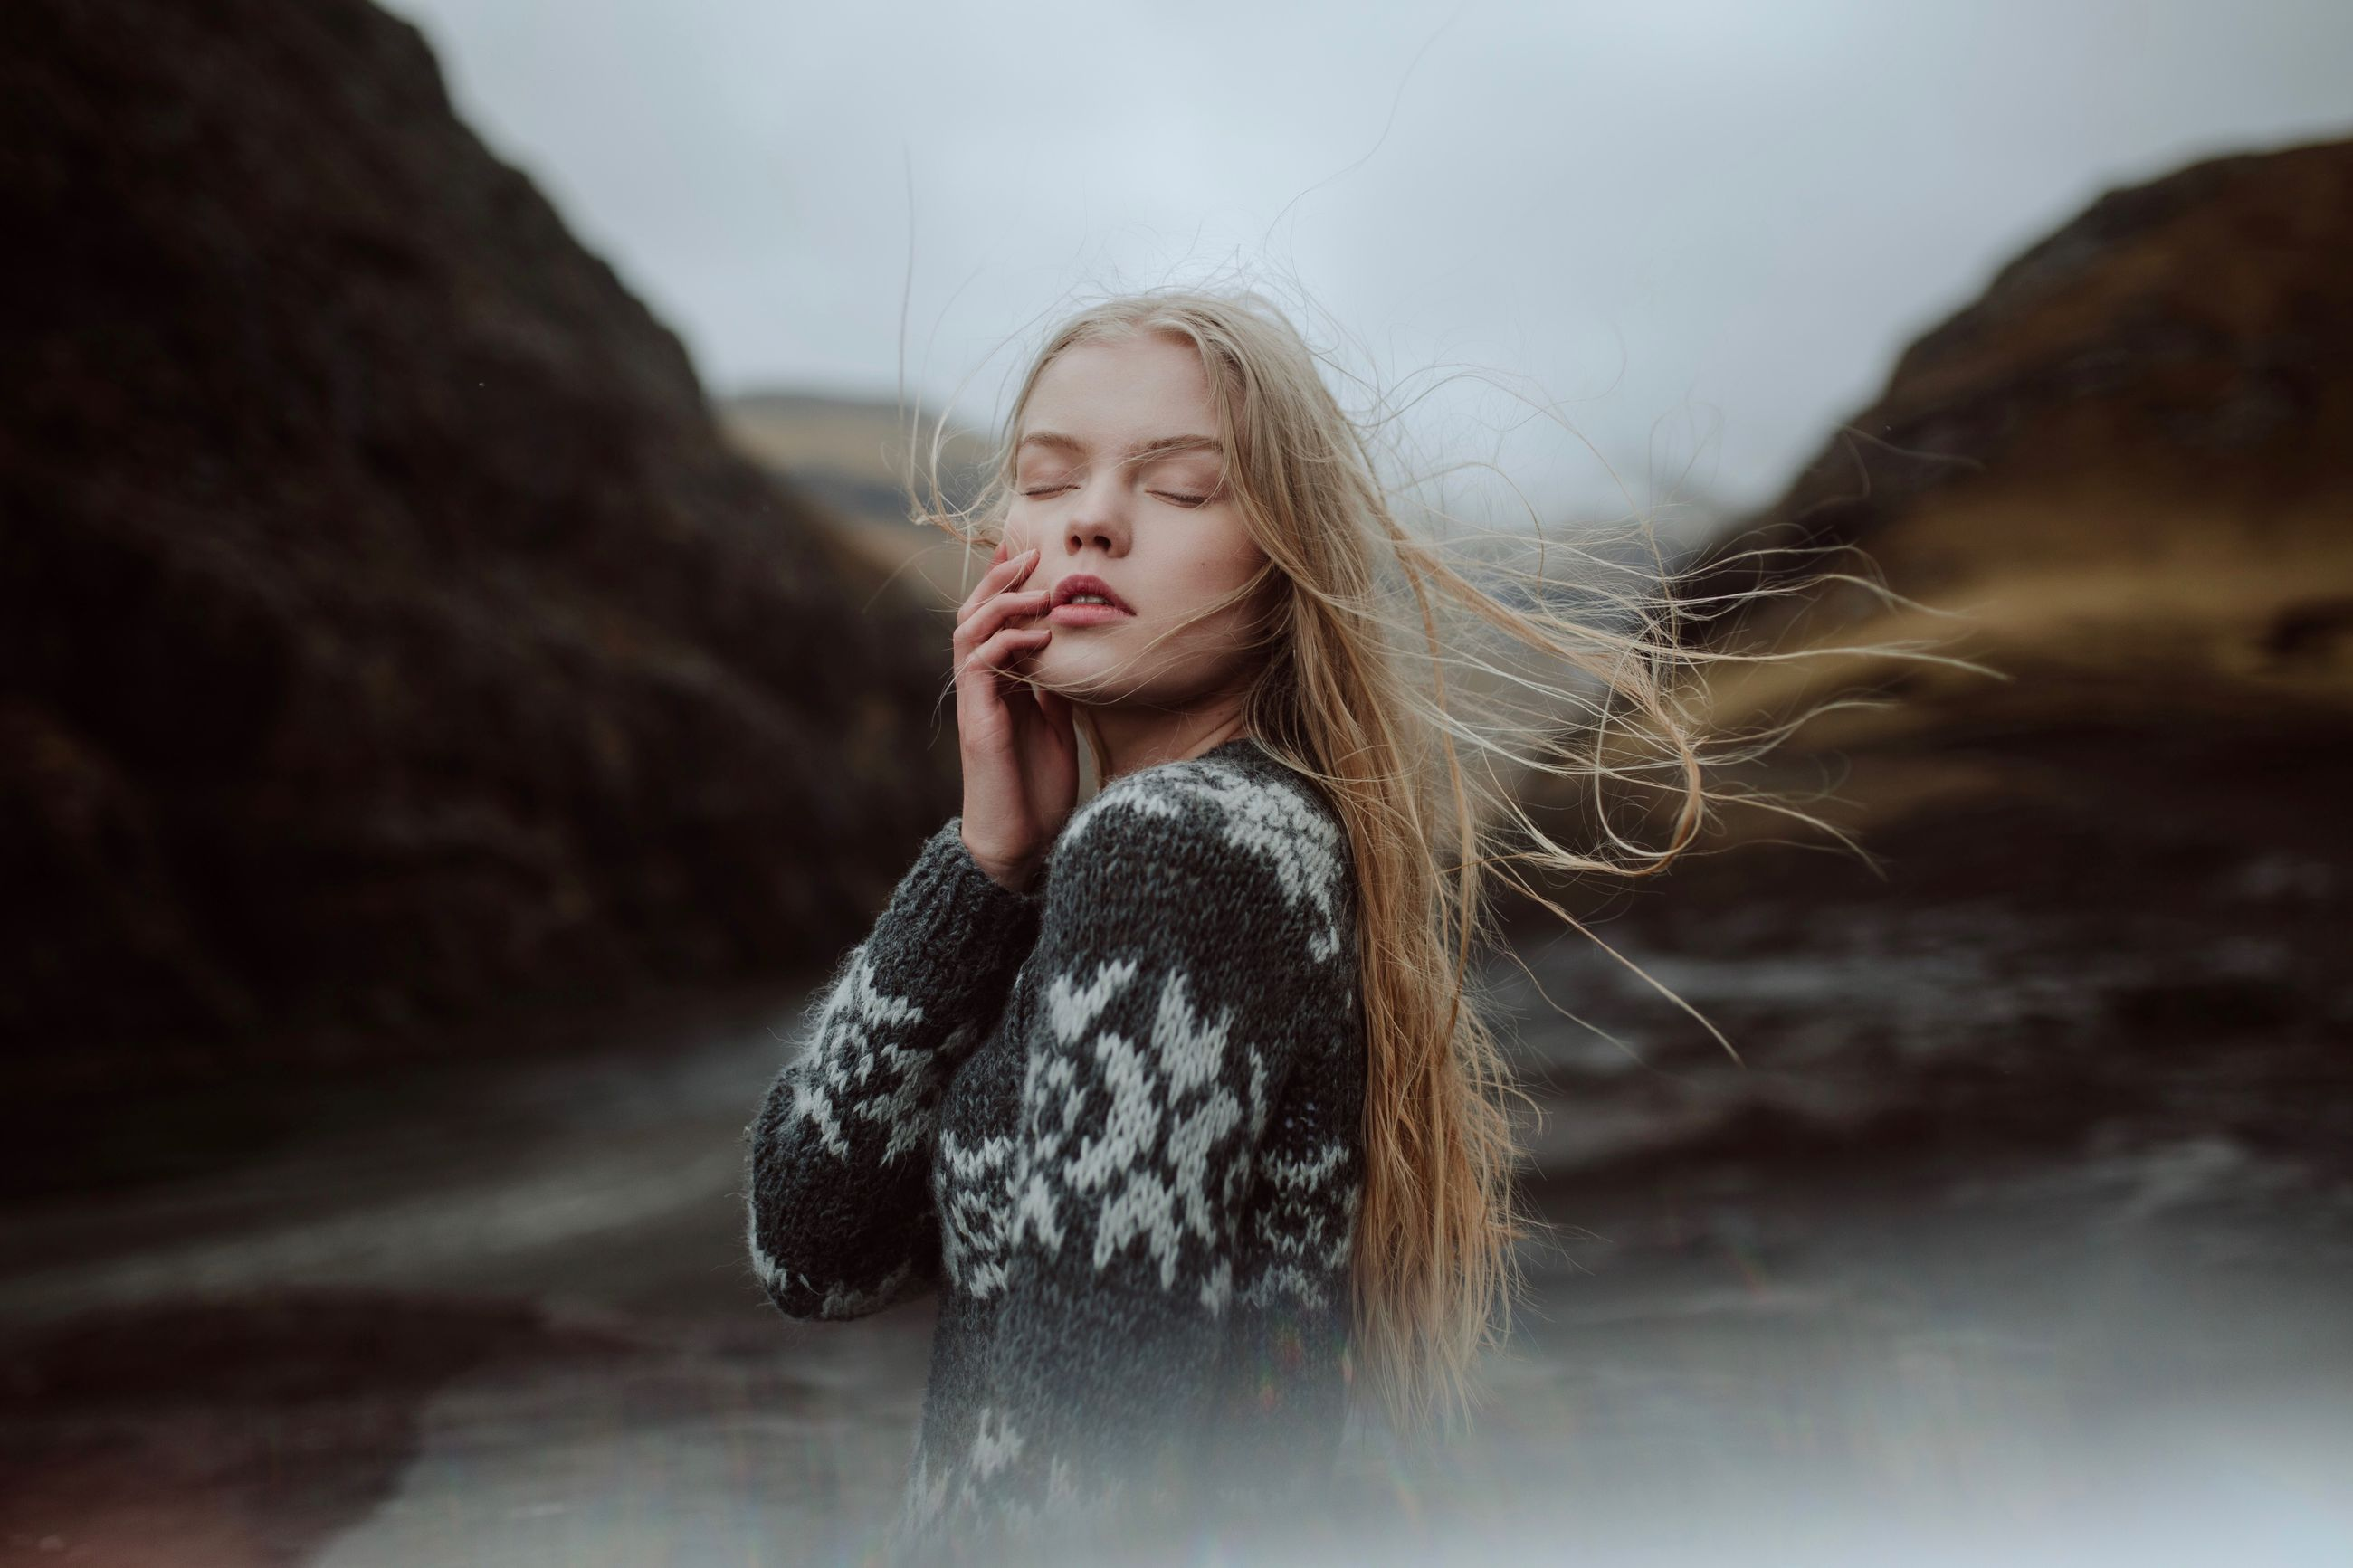 one person, real people, girls, lifestyles, looking, women, long hair, hair, warm clothing, front view, child, standing, leisure activity, clothing, winter, blond hair, day, young adult, beautiful woman, hairstyle, contemplation, outdoors